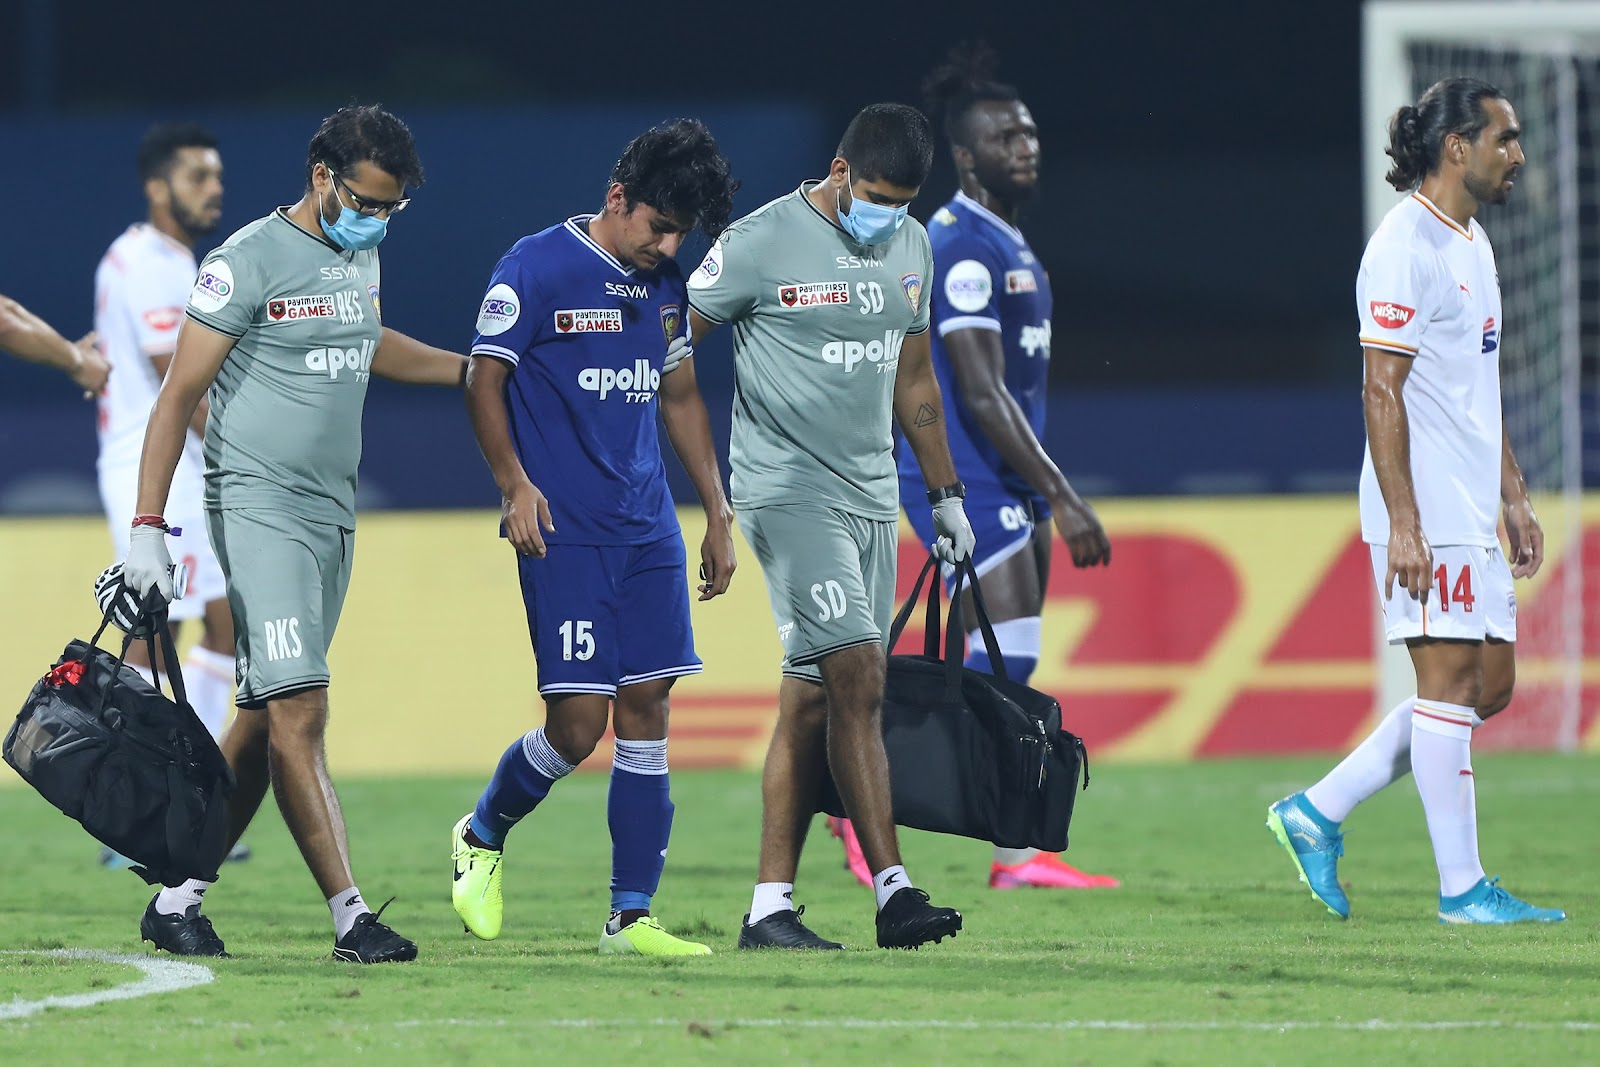 Anirudh Thapa being taken off against Bengaluru FC (Image Credit: Indian Super League)